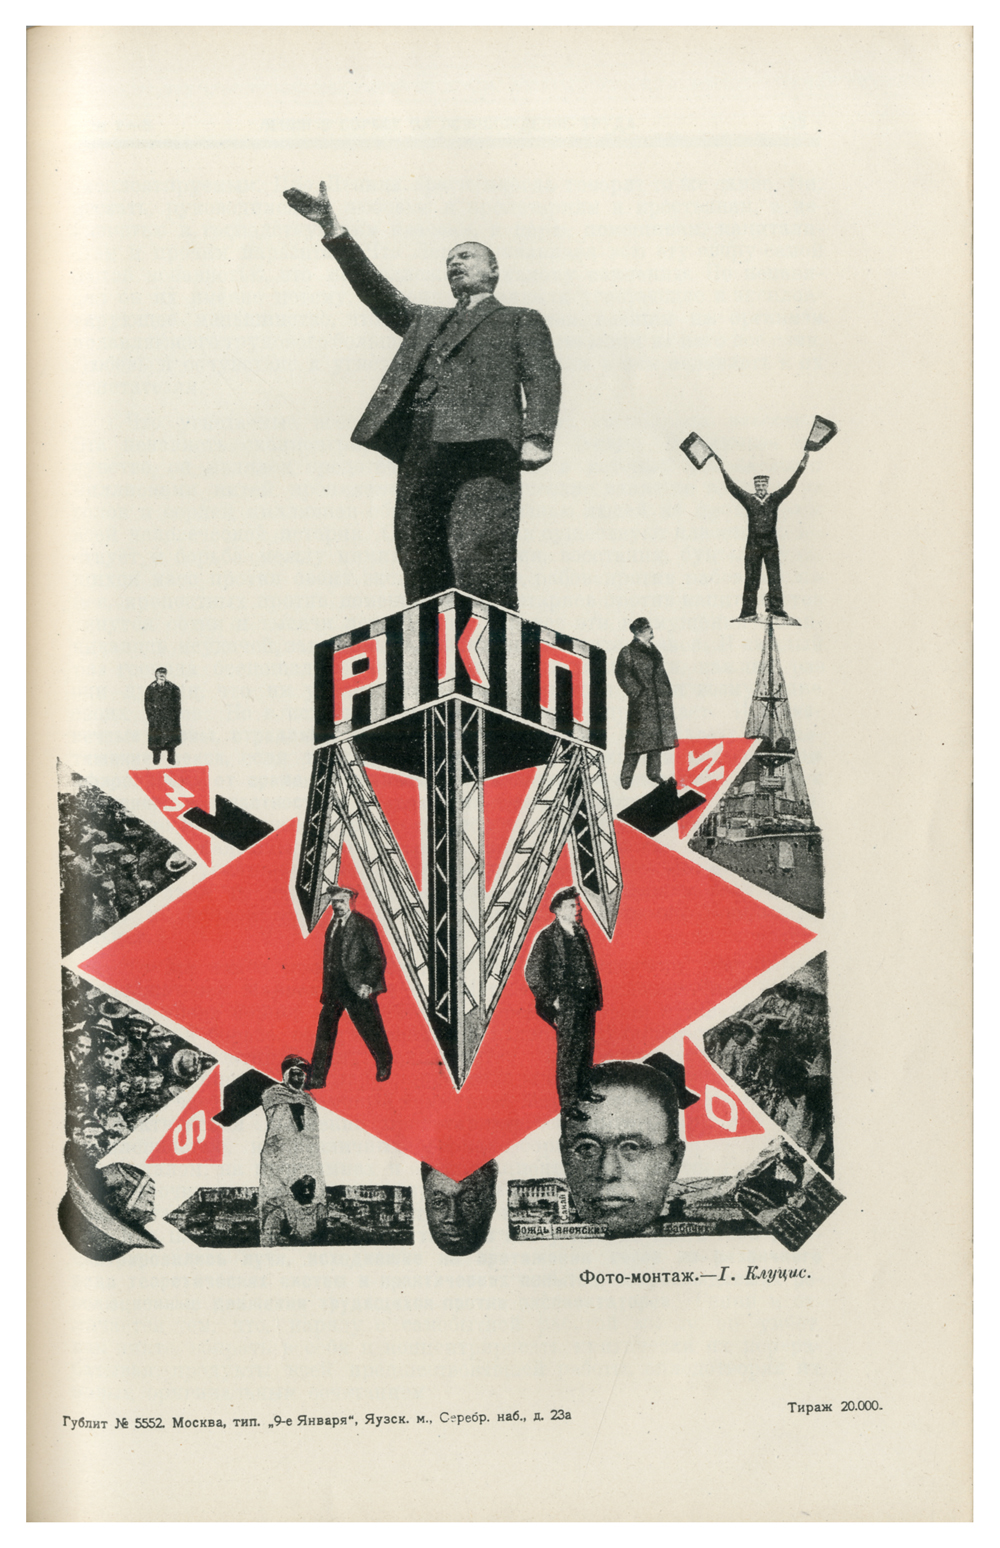 gustav-klutsis-photomontage-lithography-on-paper-1924-ne-boltai-collection